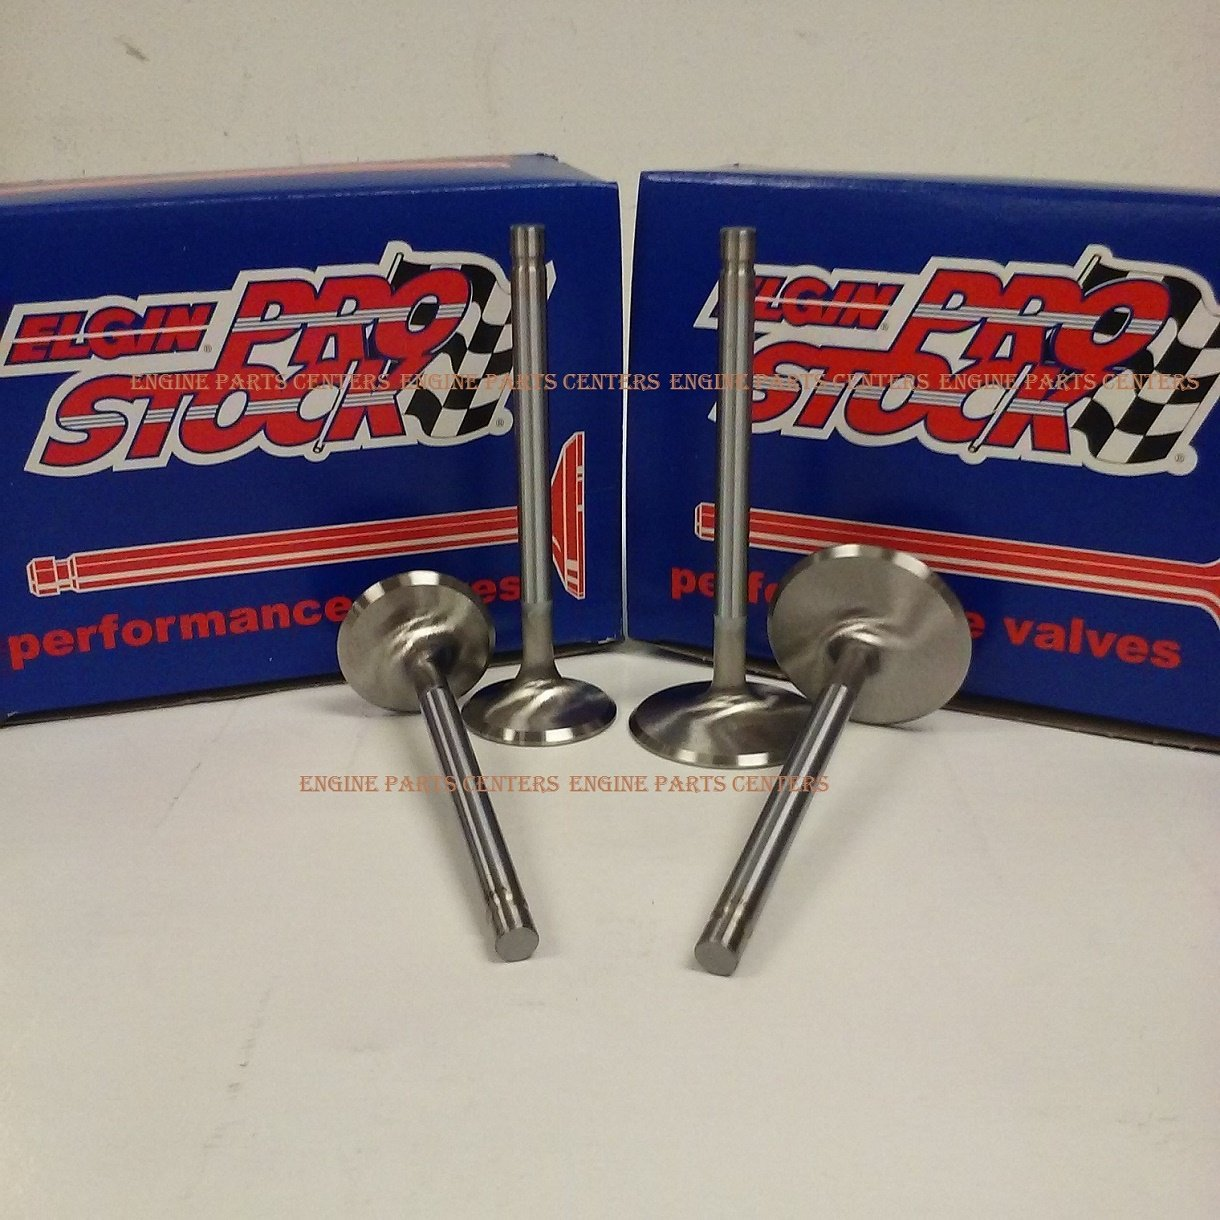 New Stainless Steel Valve Set 1.72' Exhaust & 2.065' Intake Chevy bb 396 427 454 (2.065'/1.720' INT/EXH) Elgin Industries